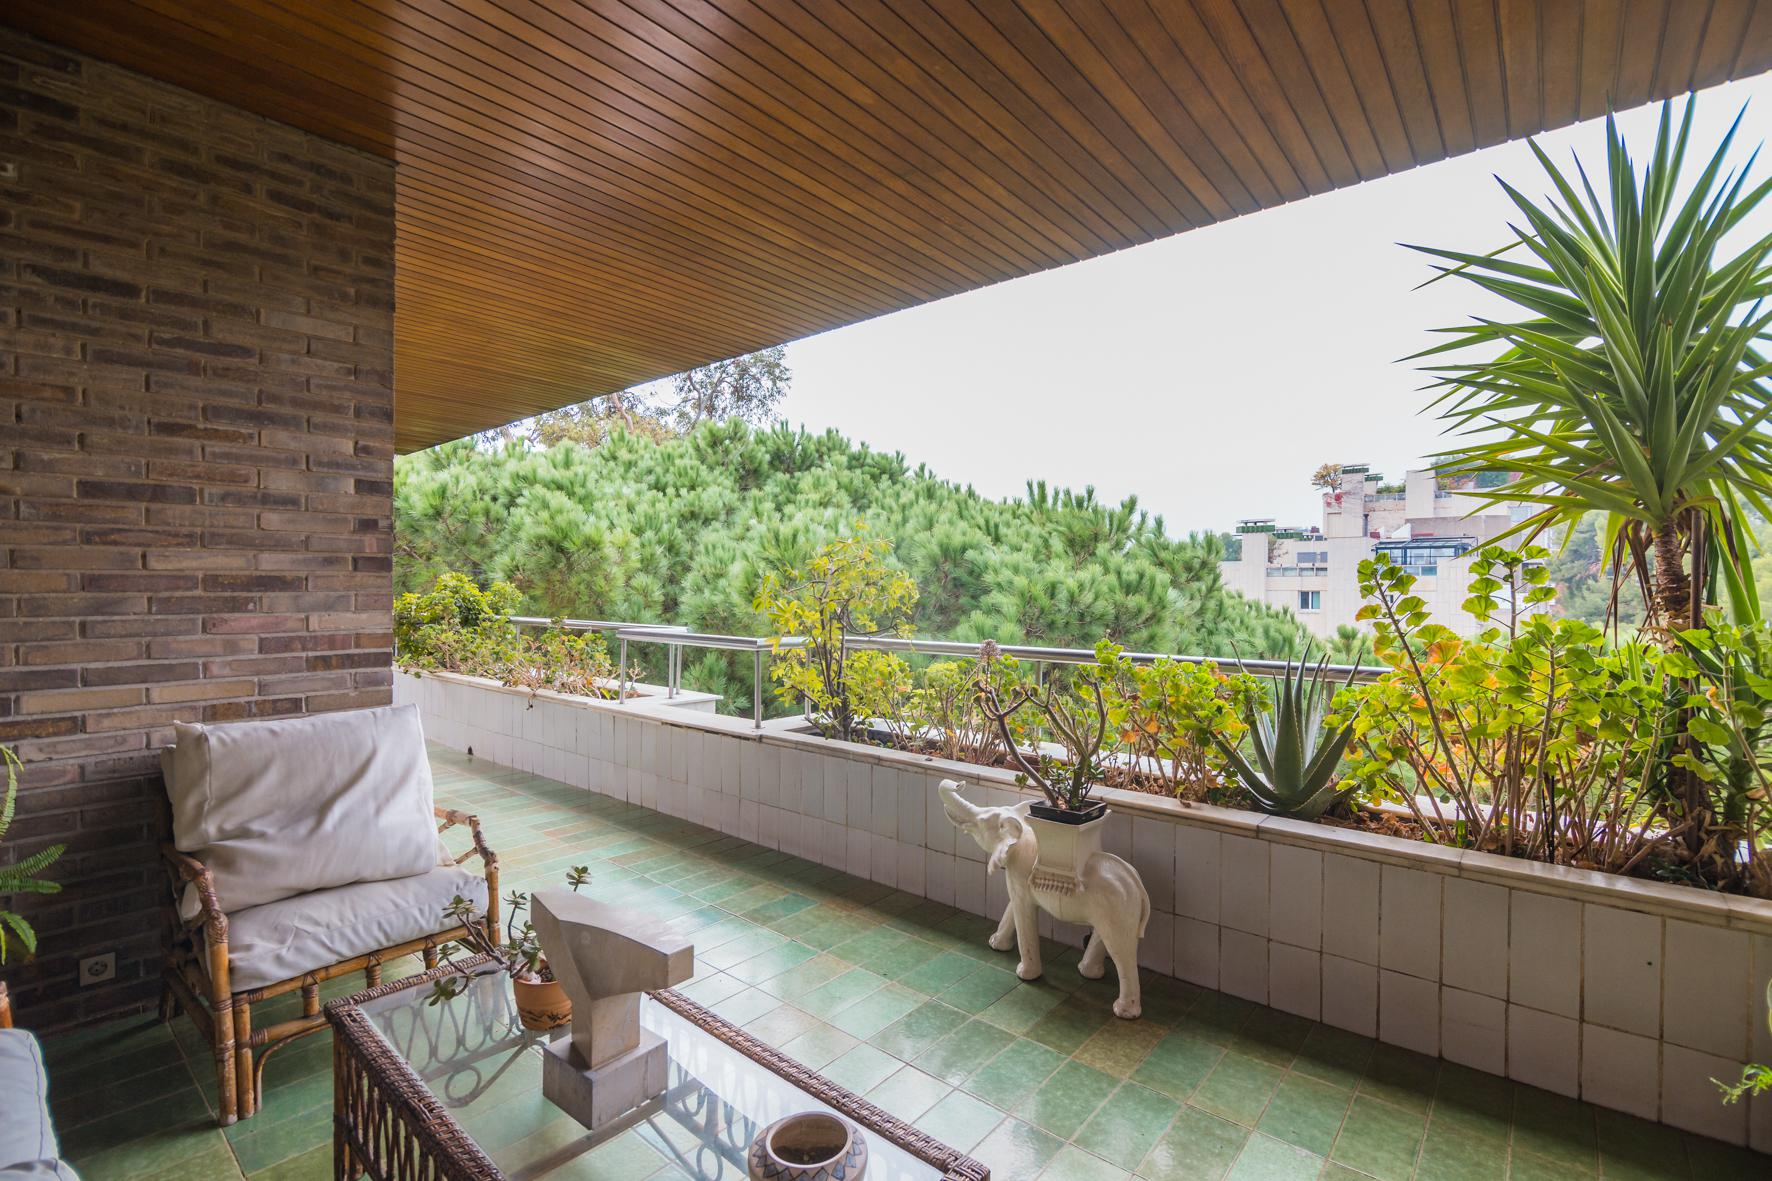 244103 Penthouse for sale in Les Corts, Pedralbes 31